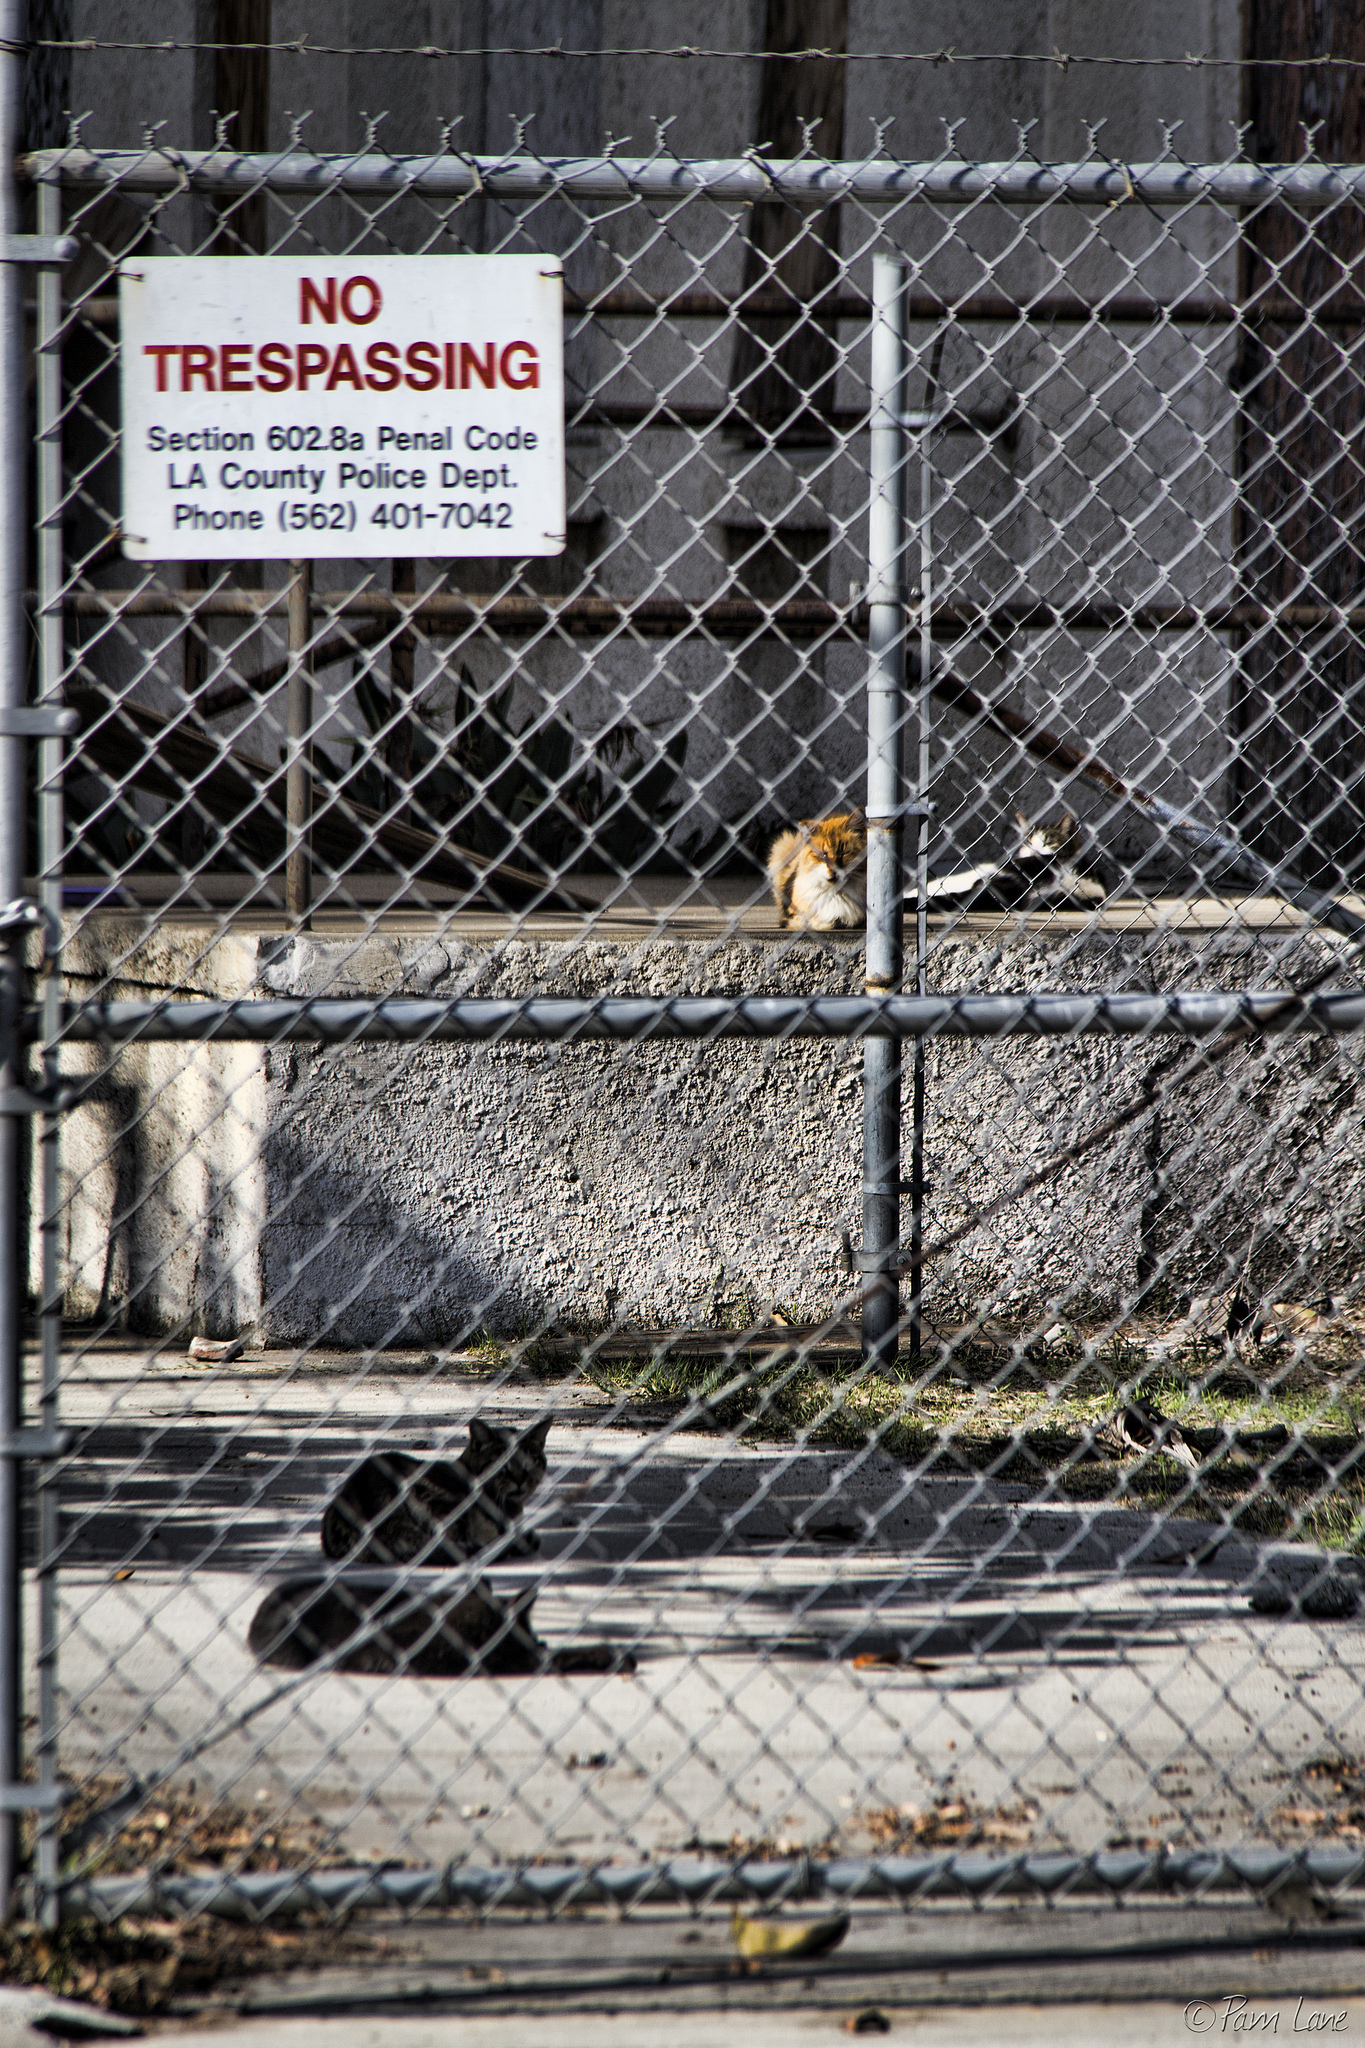 Feral cats roam the abandoned South Rancho campus. Photo by Pam Lane, DowneyDailyPhotos.com